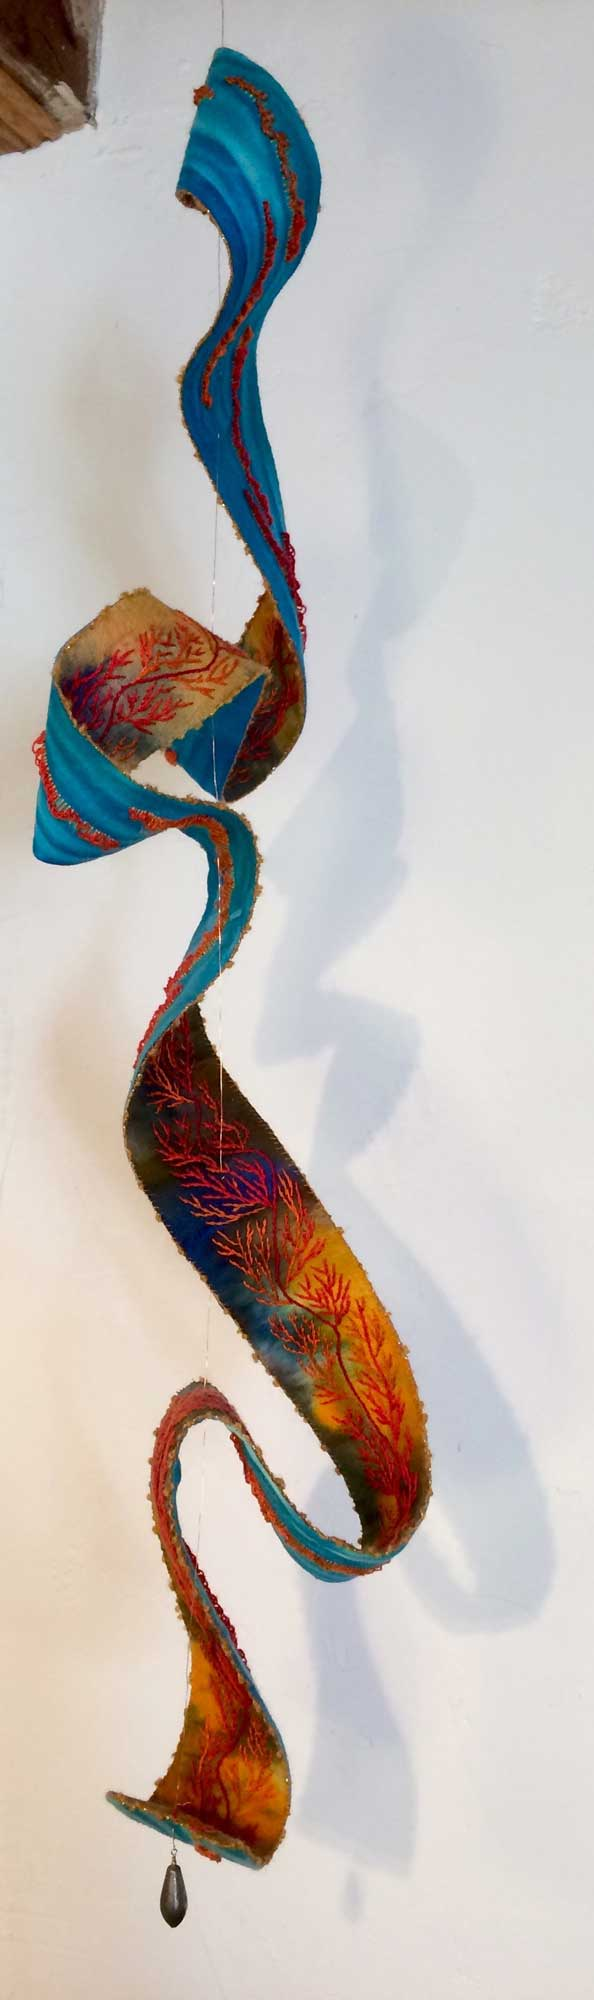 module one of the embroidery mast practitioner course at the school of stitched textiles